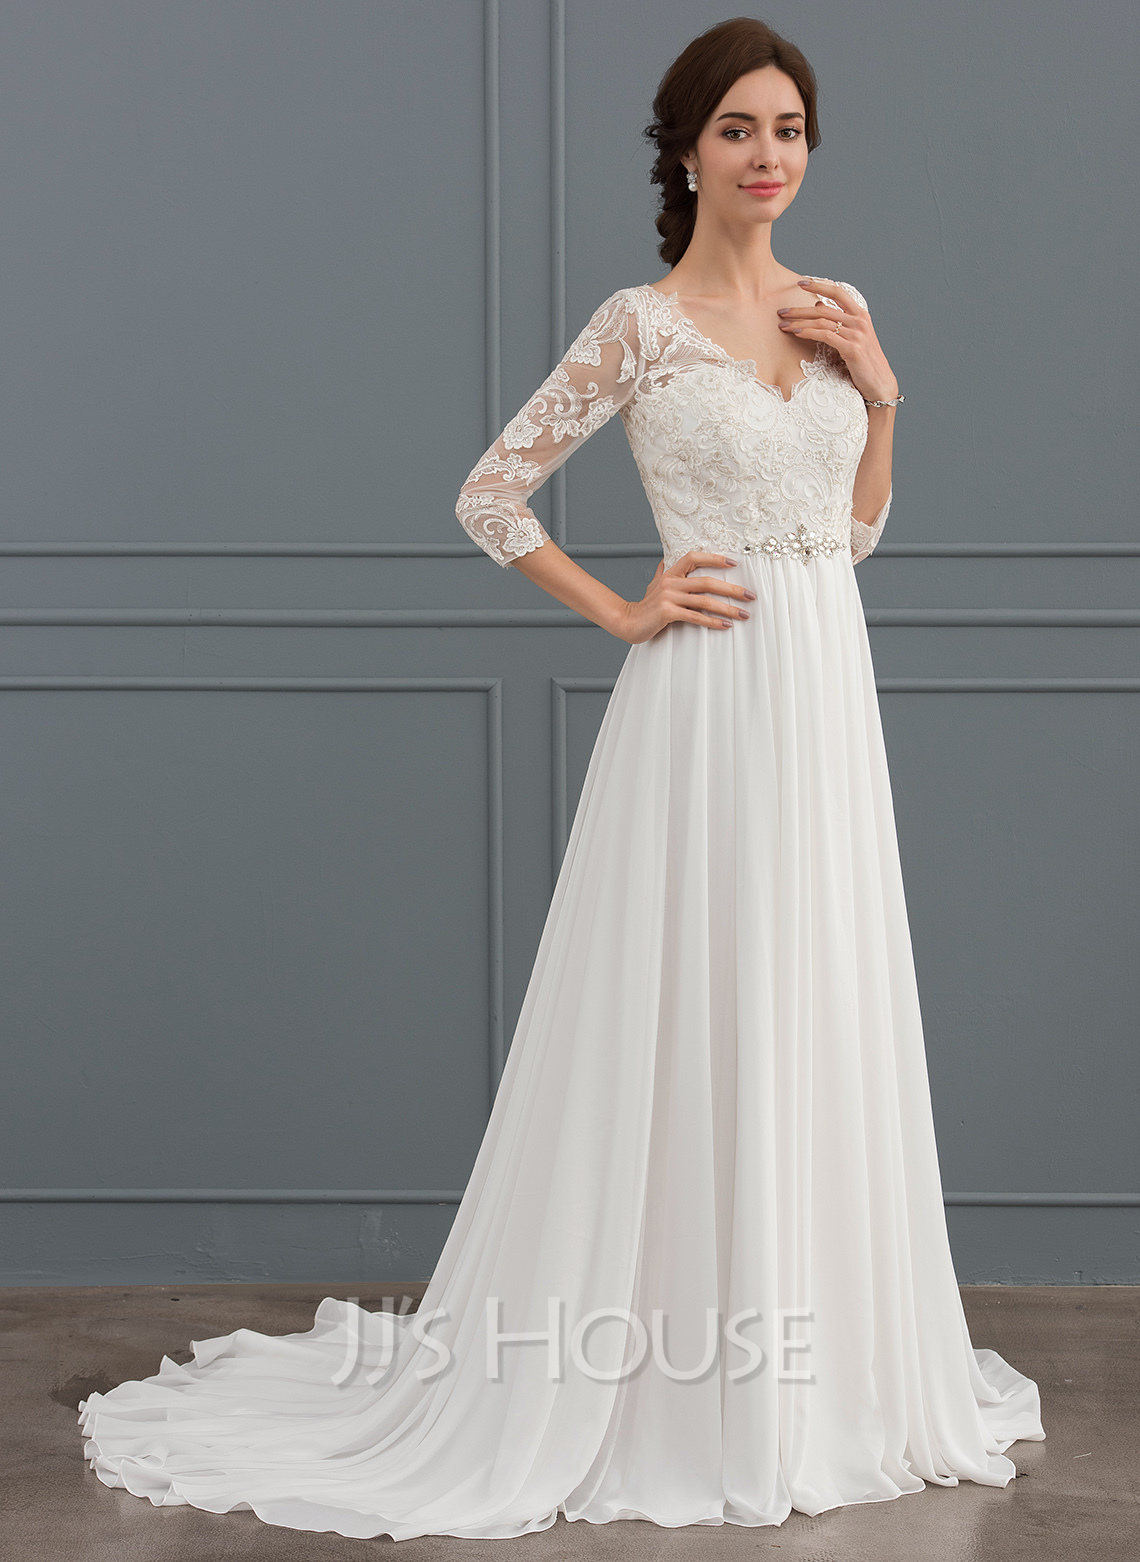 A Line Princess V Neck Sweep Train Chiffon Lace Wedding Dress With Beading Loading Zoom